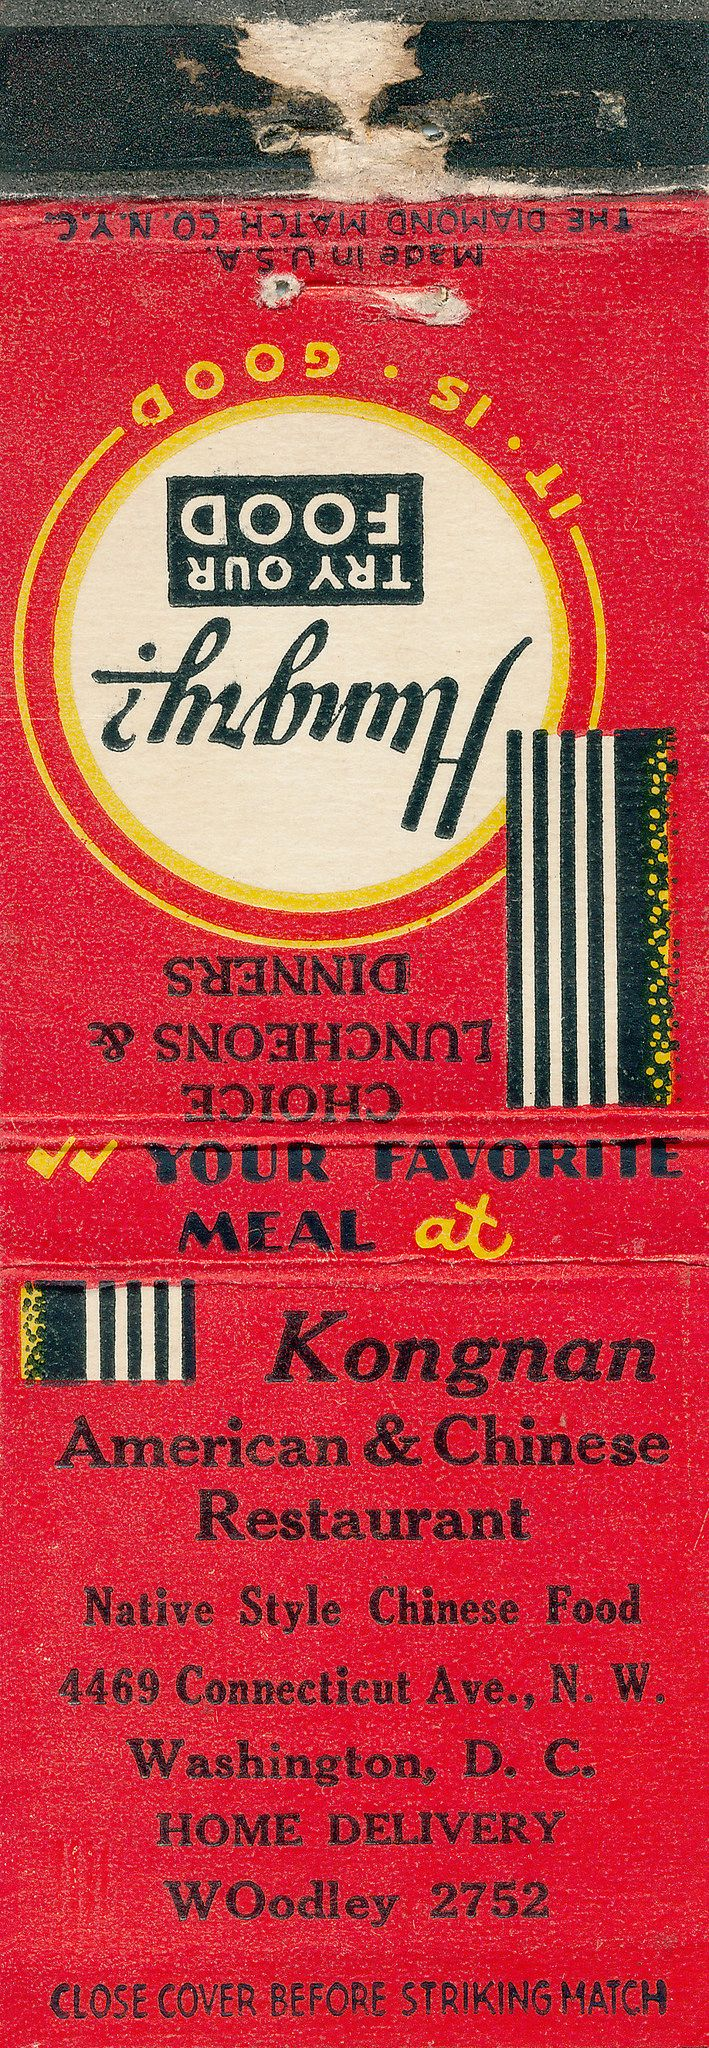 https://flic.kr/p/P7kZ7G   Kongnan Restaurant (1940s)   The Kongnan American and Chinese Restaurant was located in the Van Ness area in the 1940s, in a small storefront just north of the Chevy Chase Ice Palace. When the proprietors applied for a liquor license in 1944, the local citizens association objected on the grounds that lots of kids frequented the ice palace nearby. The owner protested that he would never serve alcohol to minors, but his application was denied anyway. The site was…